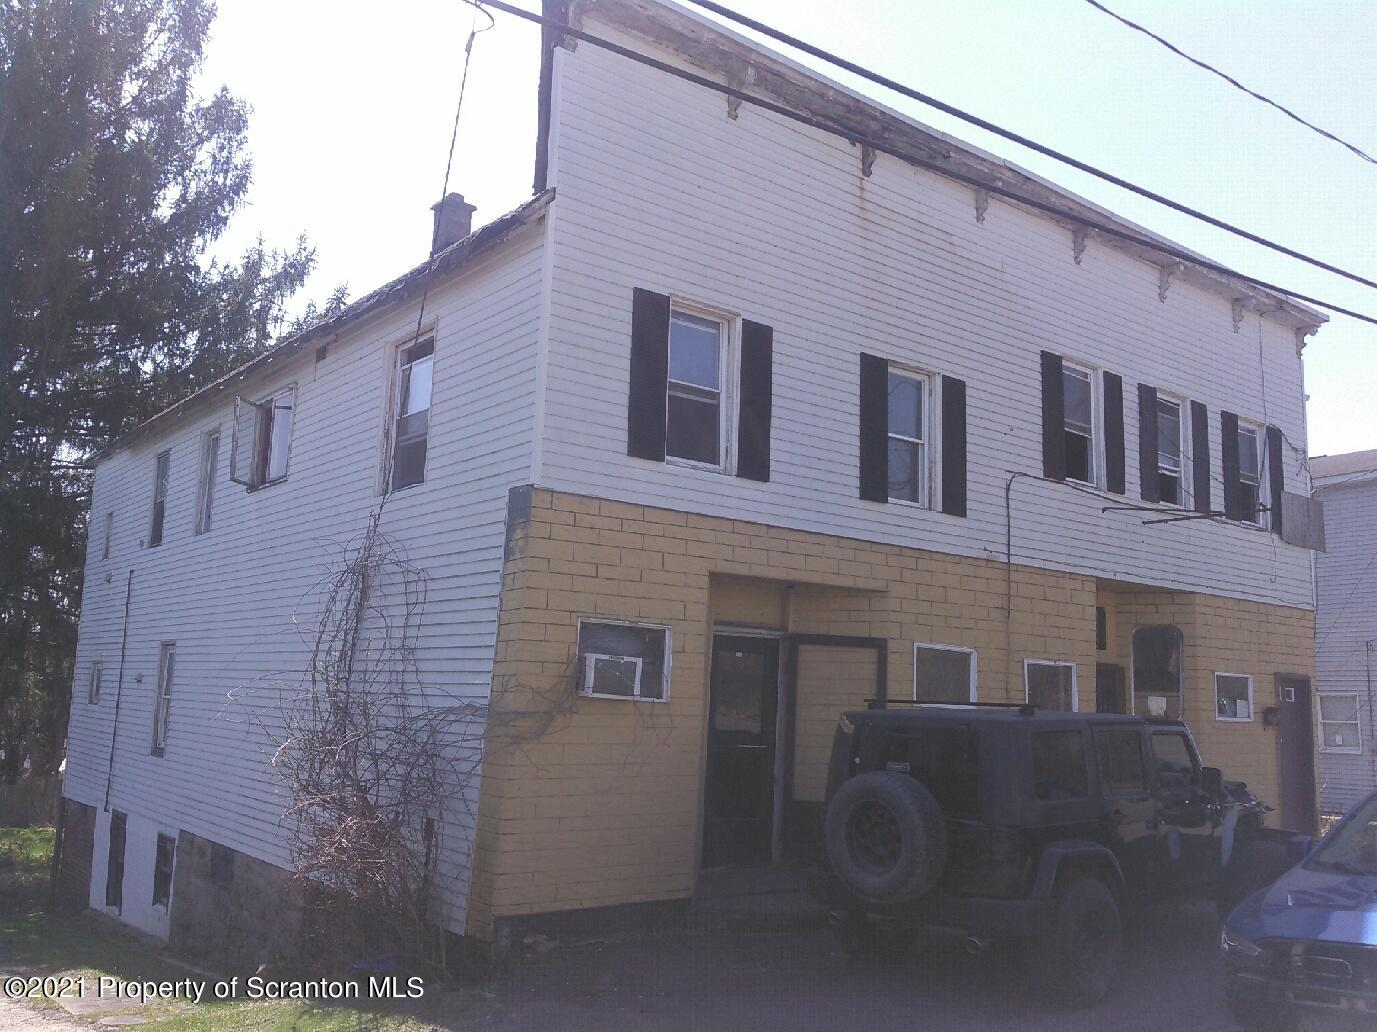 2900 Marvine Ave, Scranton, Pennsylvania 18509, ,2 BathroomsBathrooms,Commercial,For Sale,Marvine,21-1165